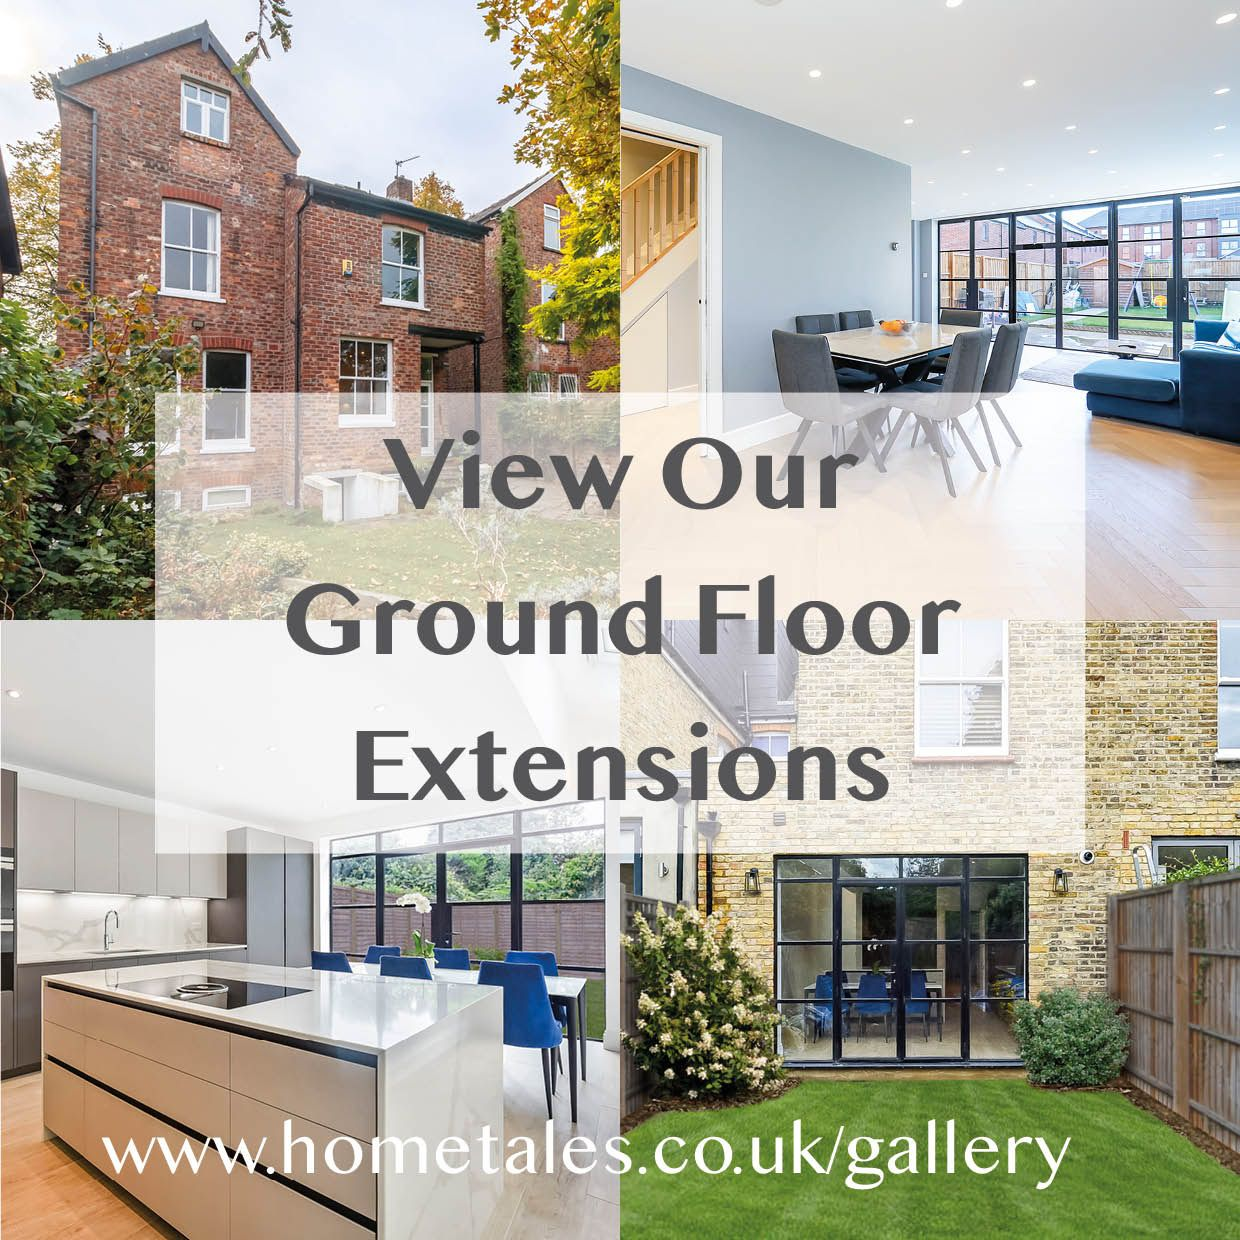 Ground Floor Extension Designs In 2020 Ground Floor House Extensions Architecture Design